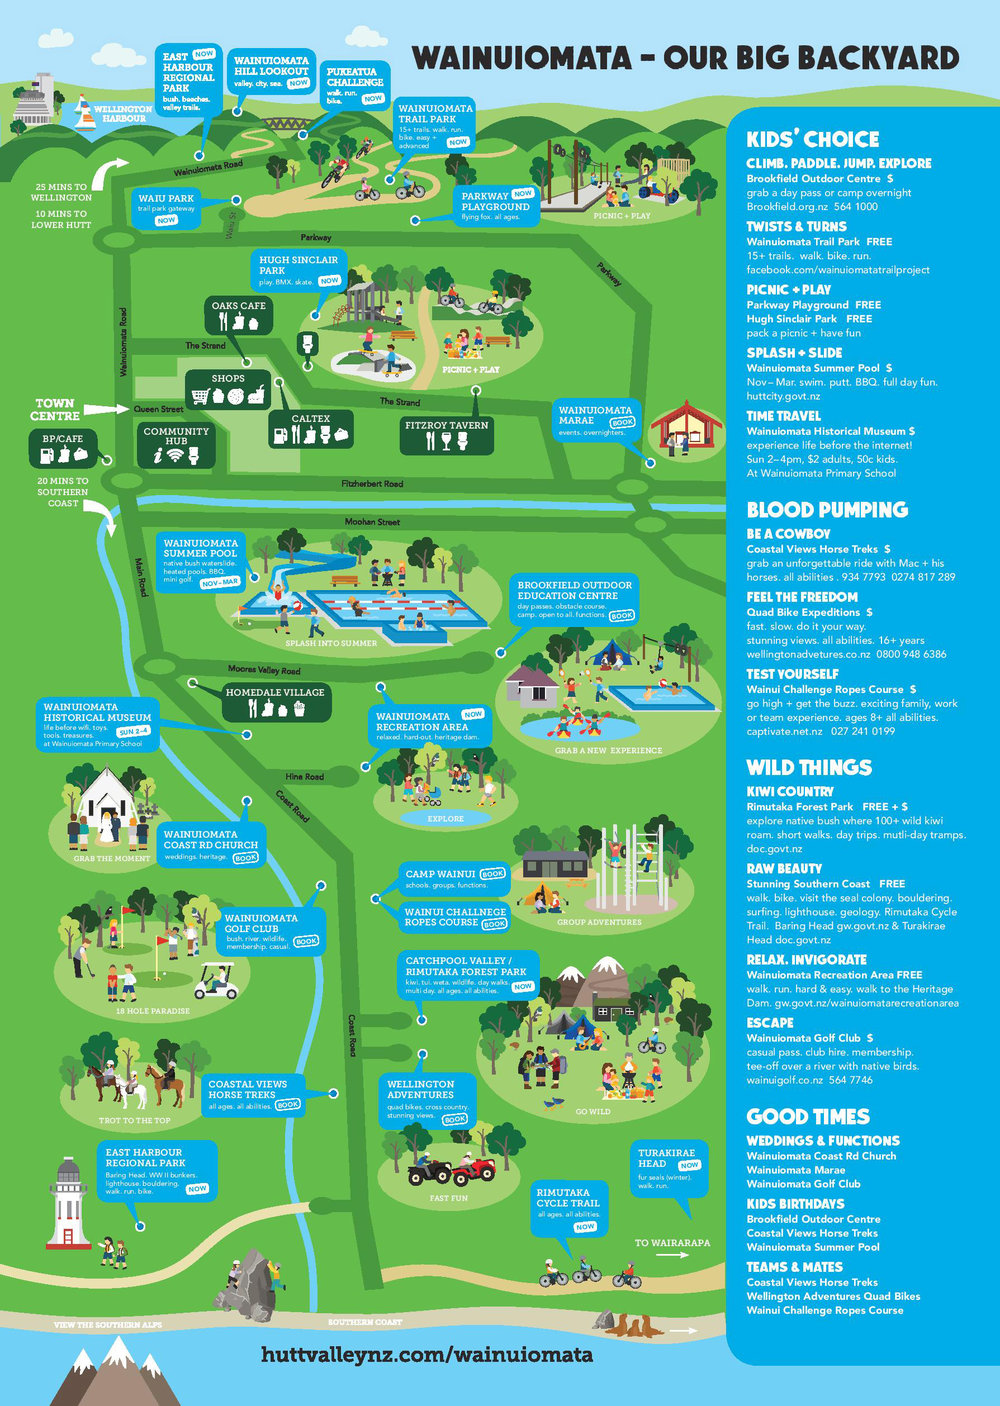 wainuiomata has amazing activities from our hill top through to our coast. we created this activities guide & got it out to every home, as well as many businesses and tourism operators. This map is also in the Library entrance to assist locals & visitors to make the most of what's on offer.